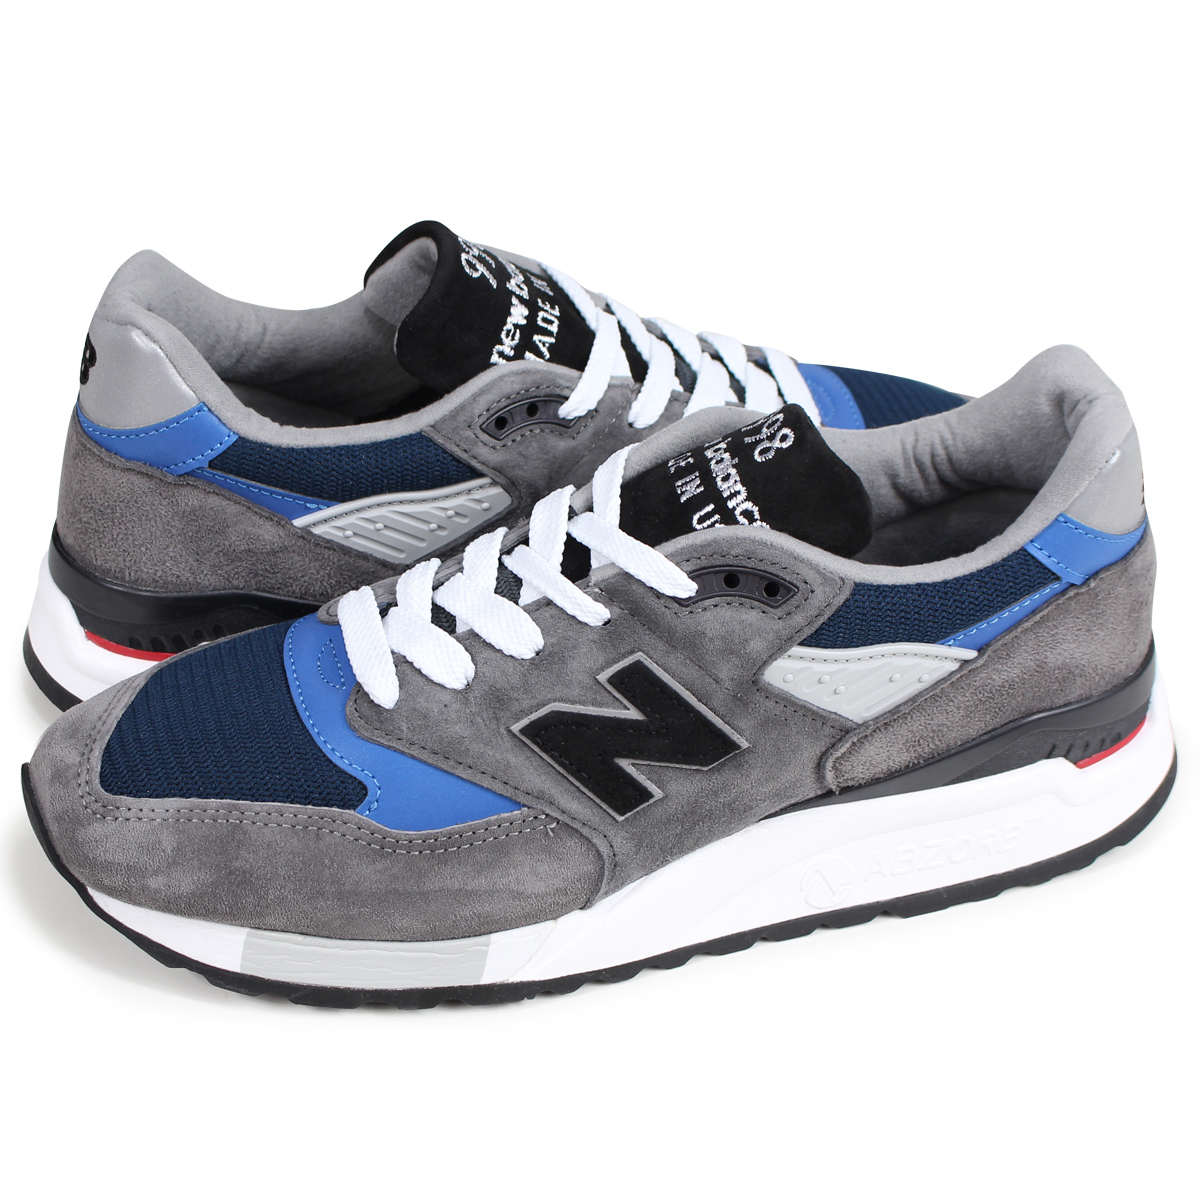 1782c1a371f71 new balance M998NF New Balance 998 men's sneakers D Wise MADE IN USA gray  [load ...